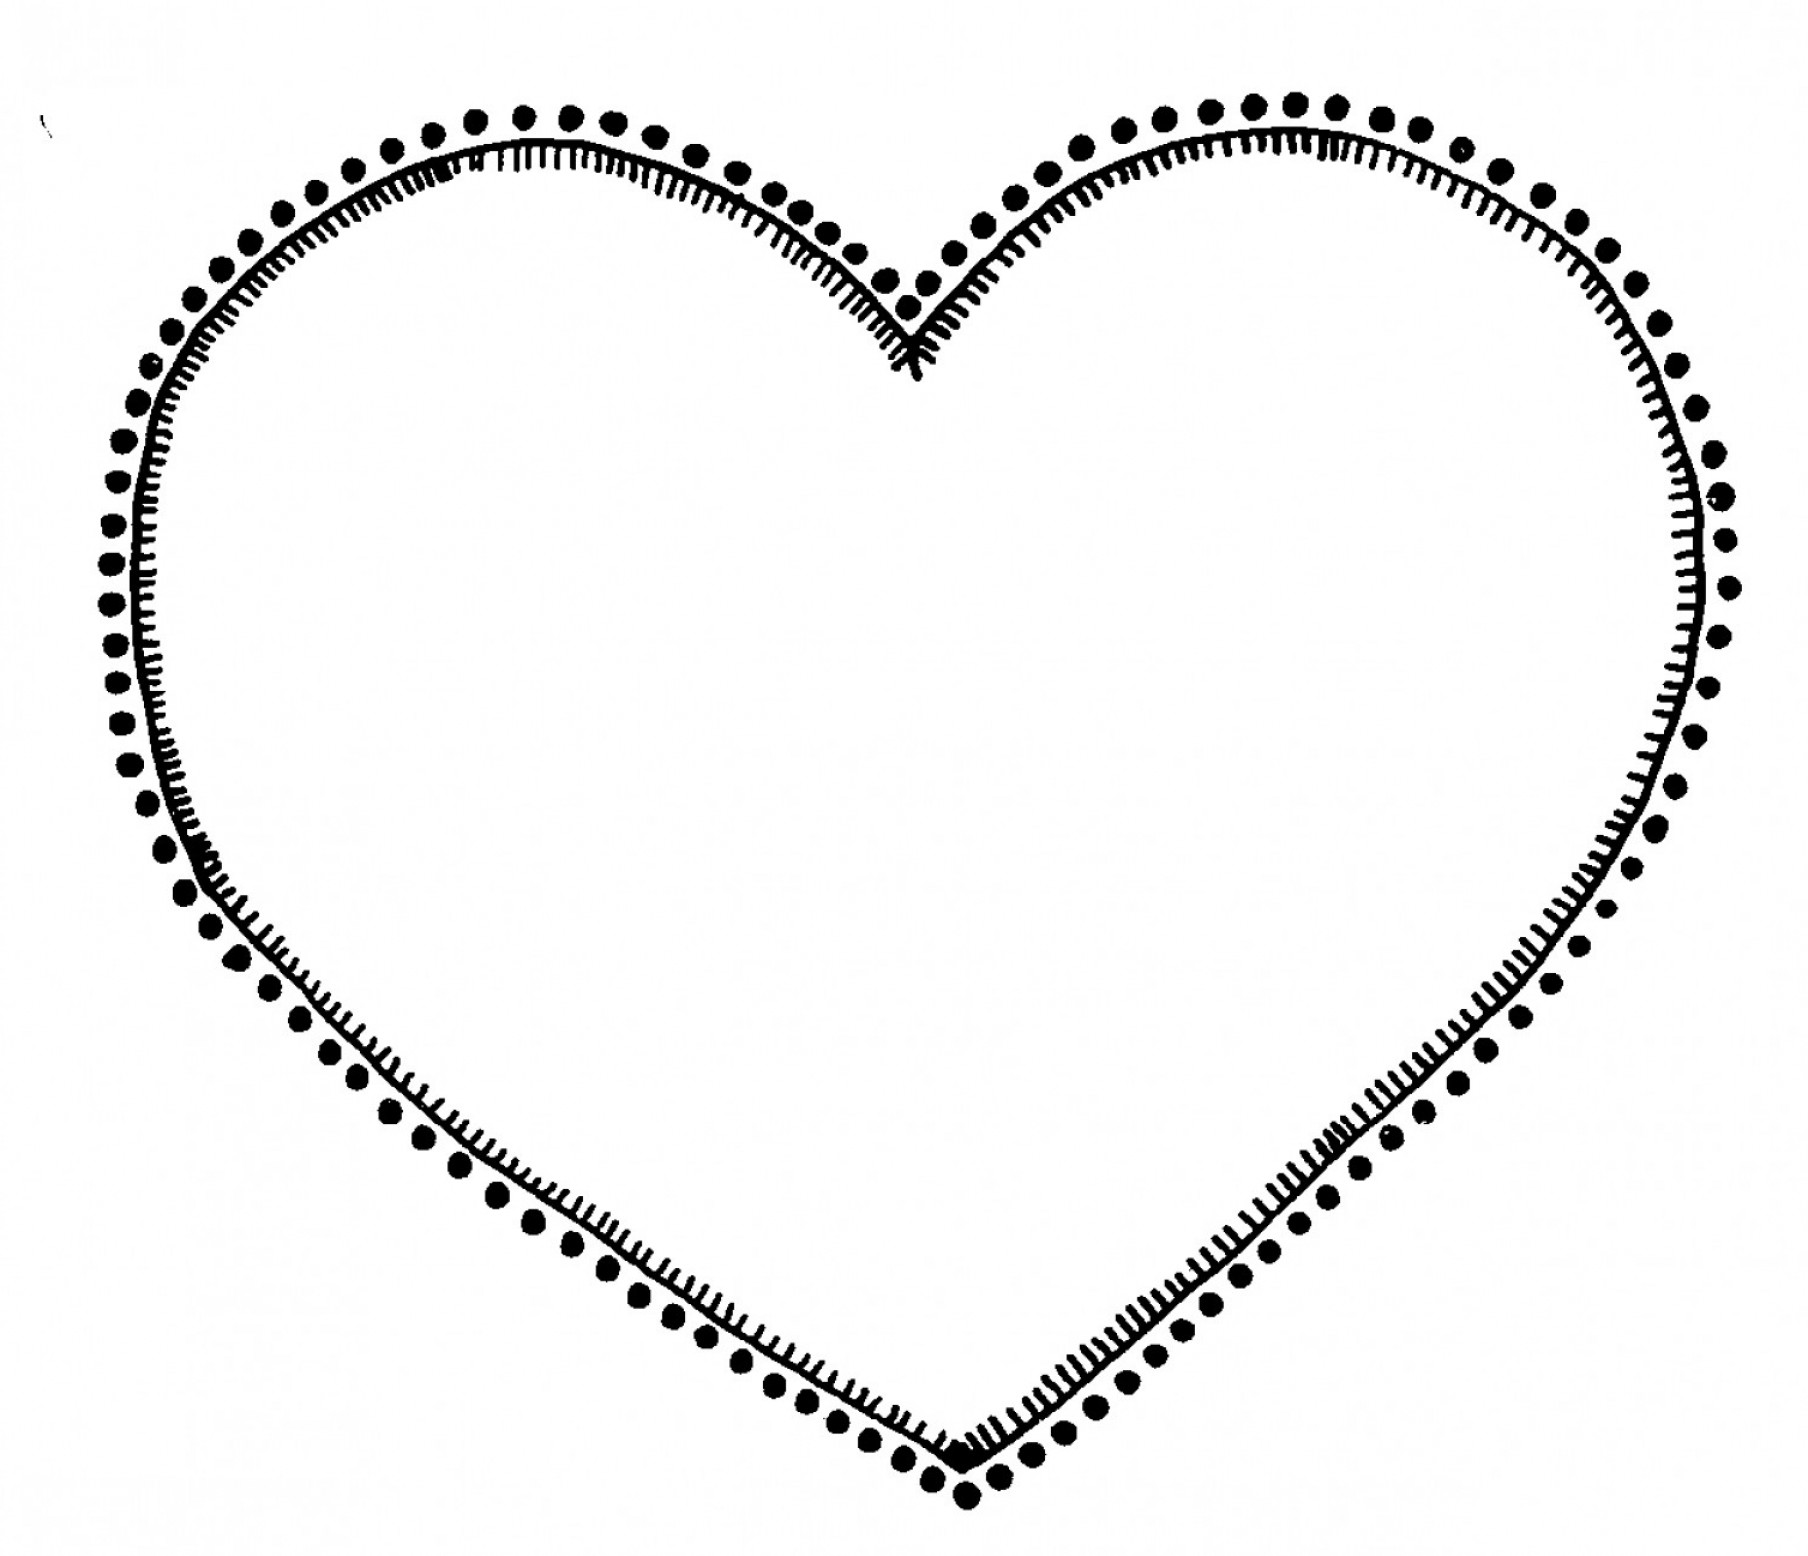 Heart Outline Clipart Black And White Black And White Heart.